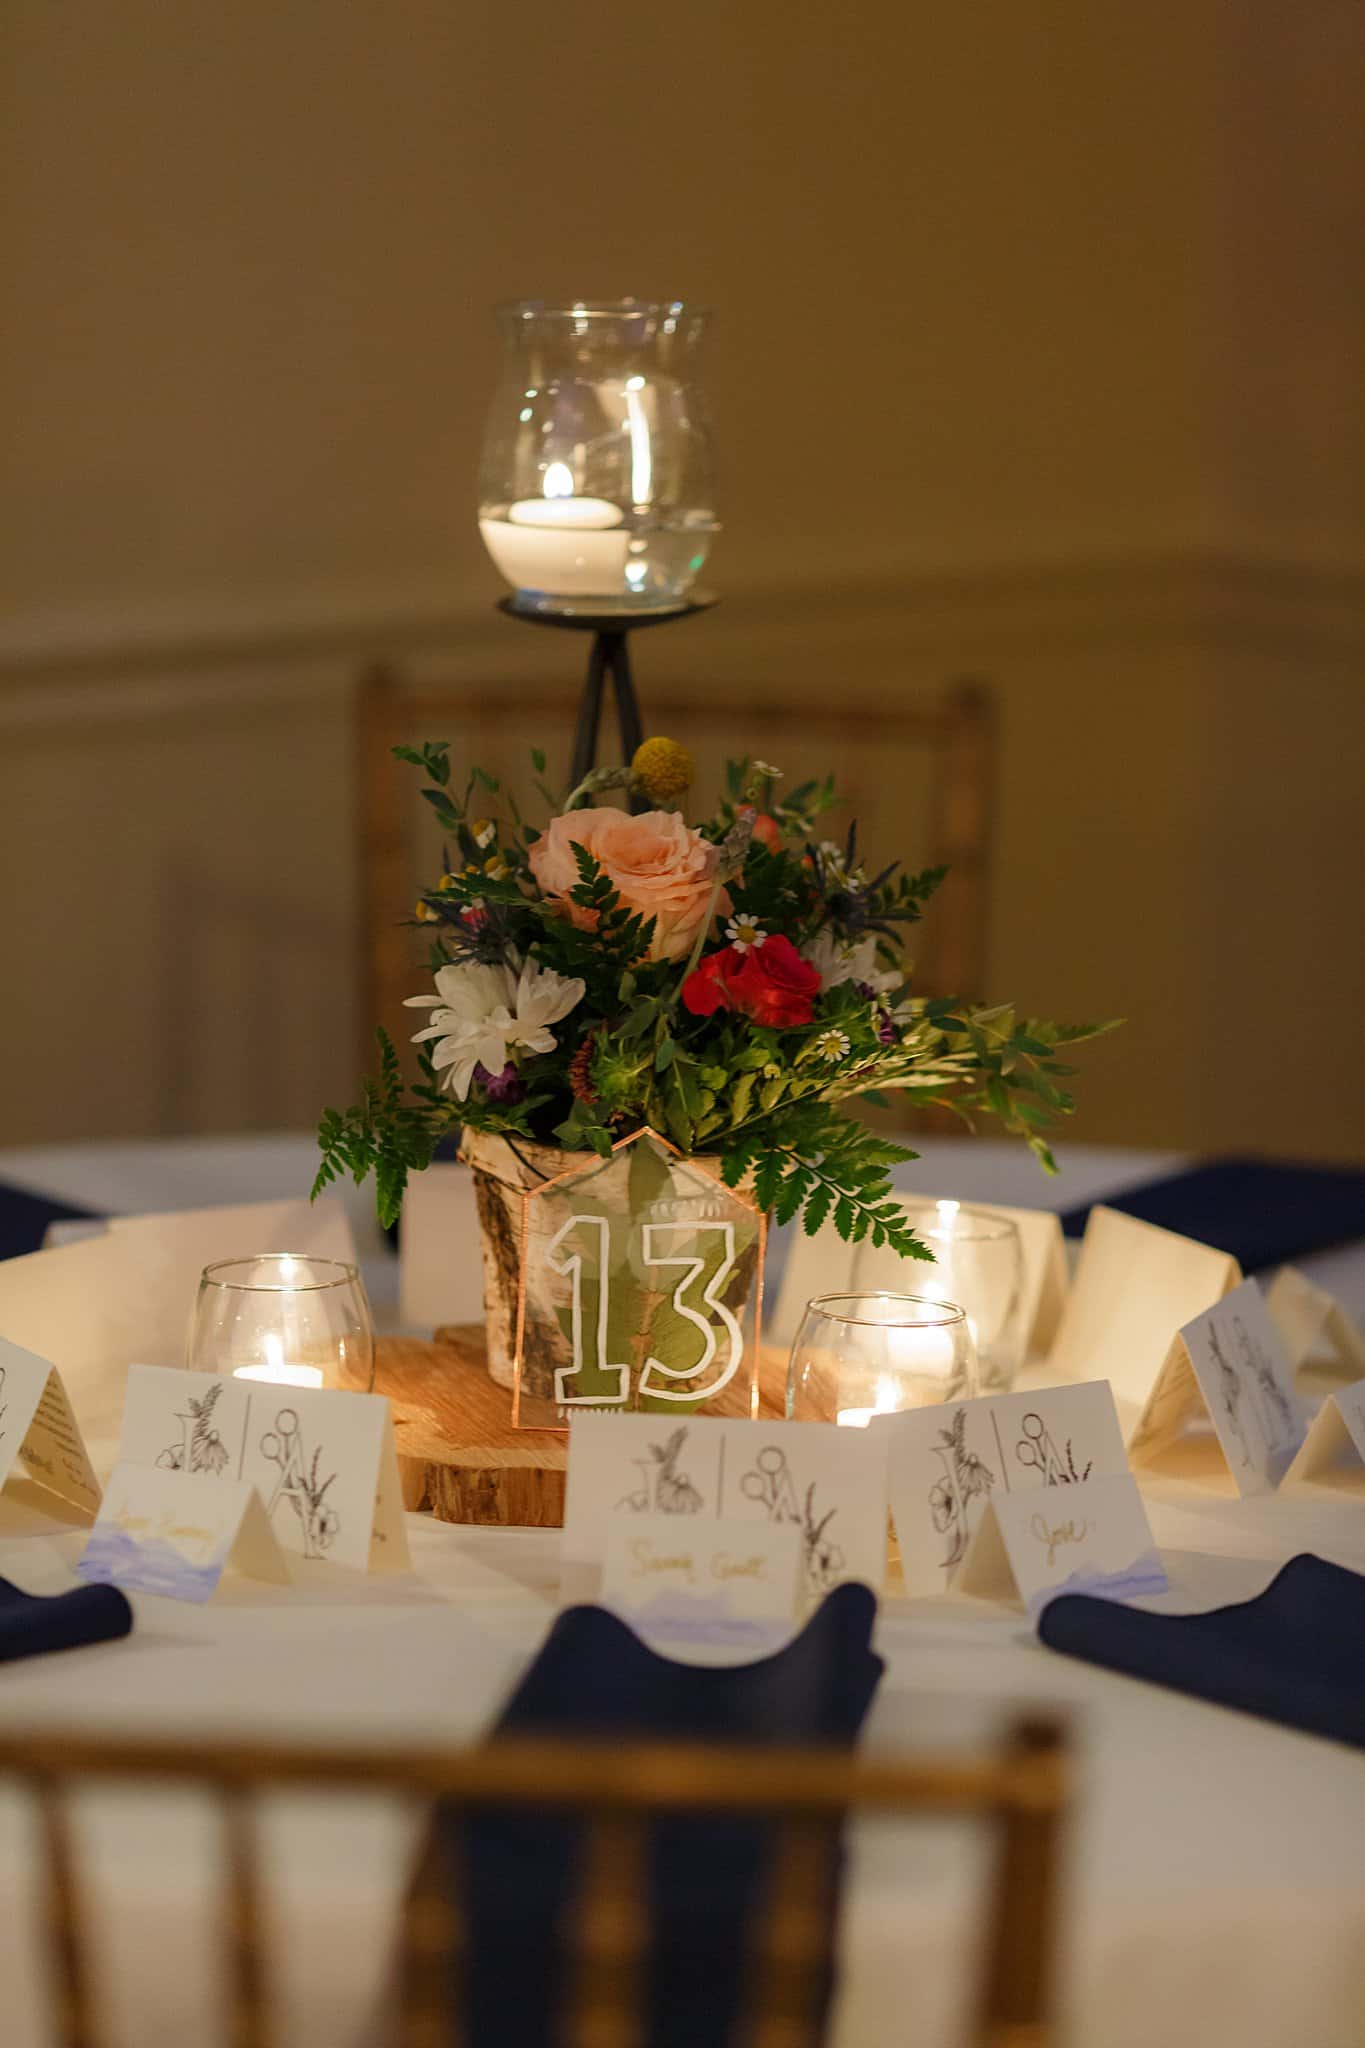 Floral tablescape with candles